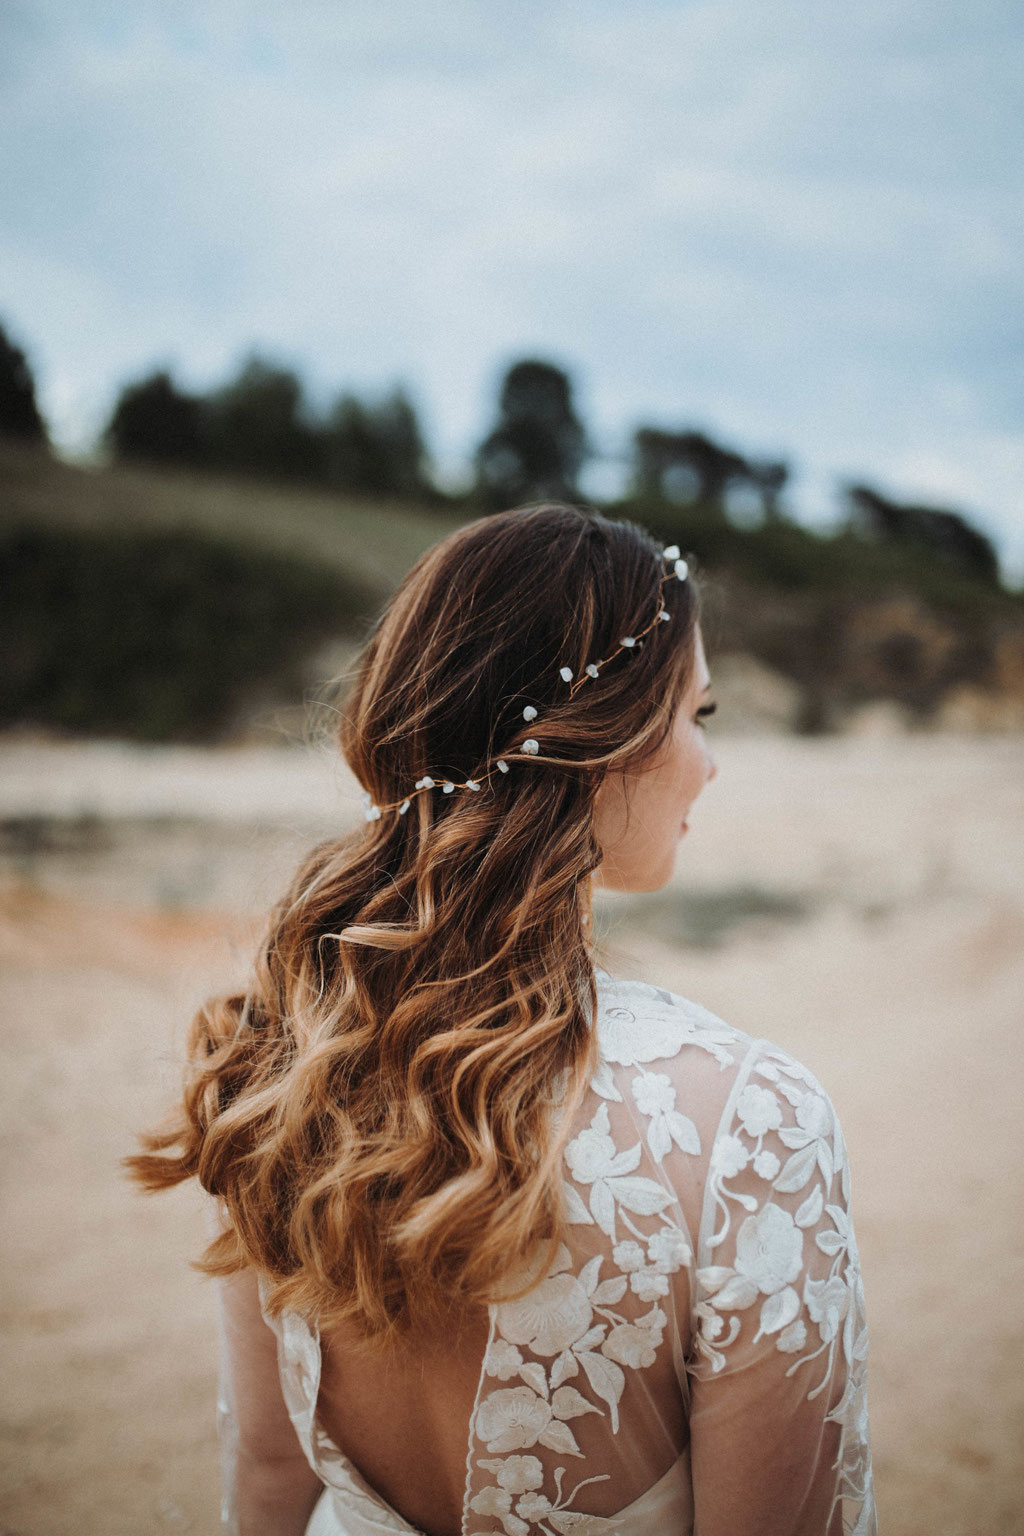 Headband with rainbow Moonstone - Photo by Elena Peters Fotografie